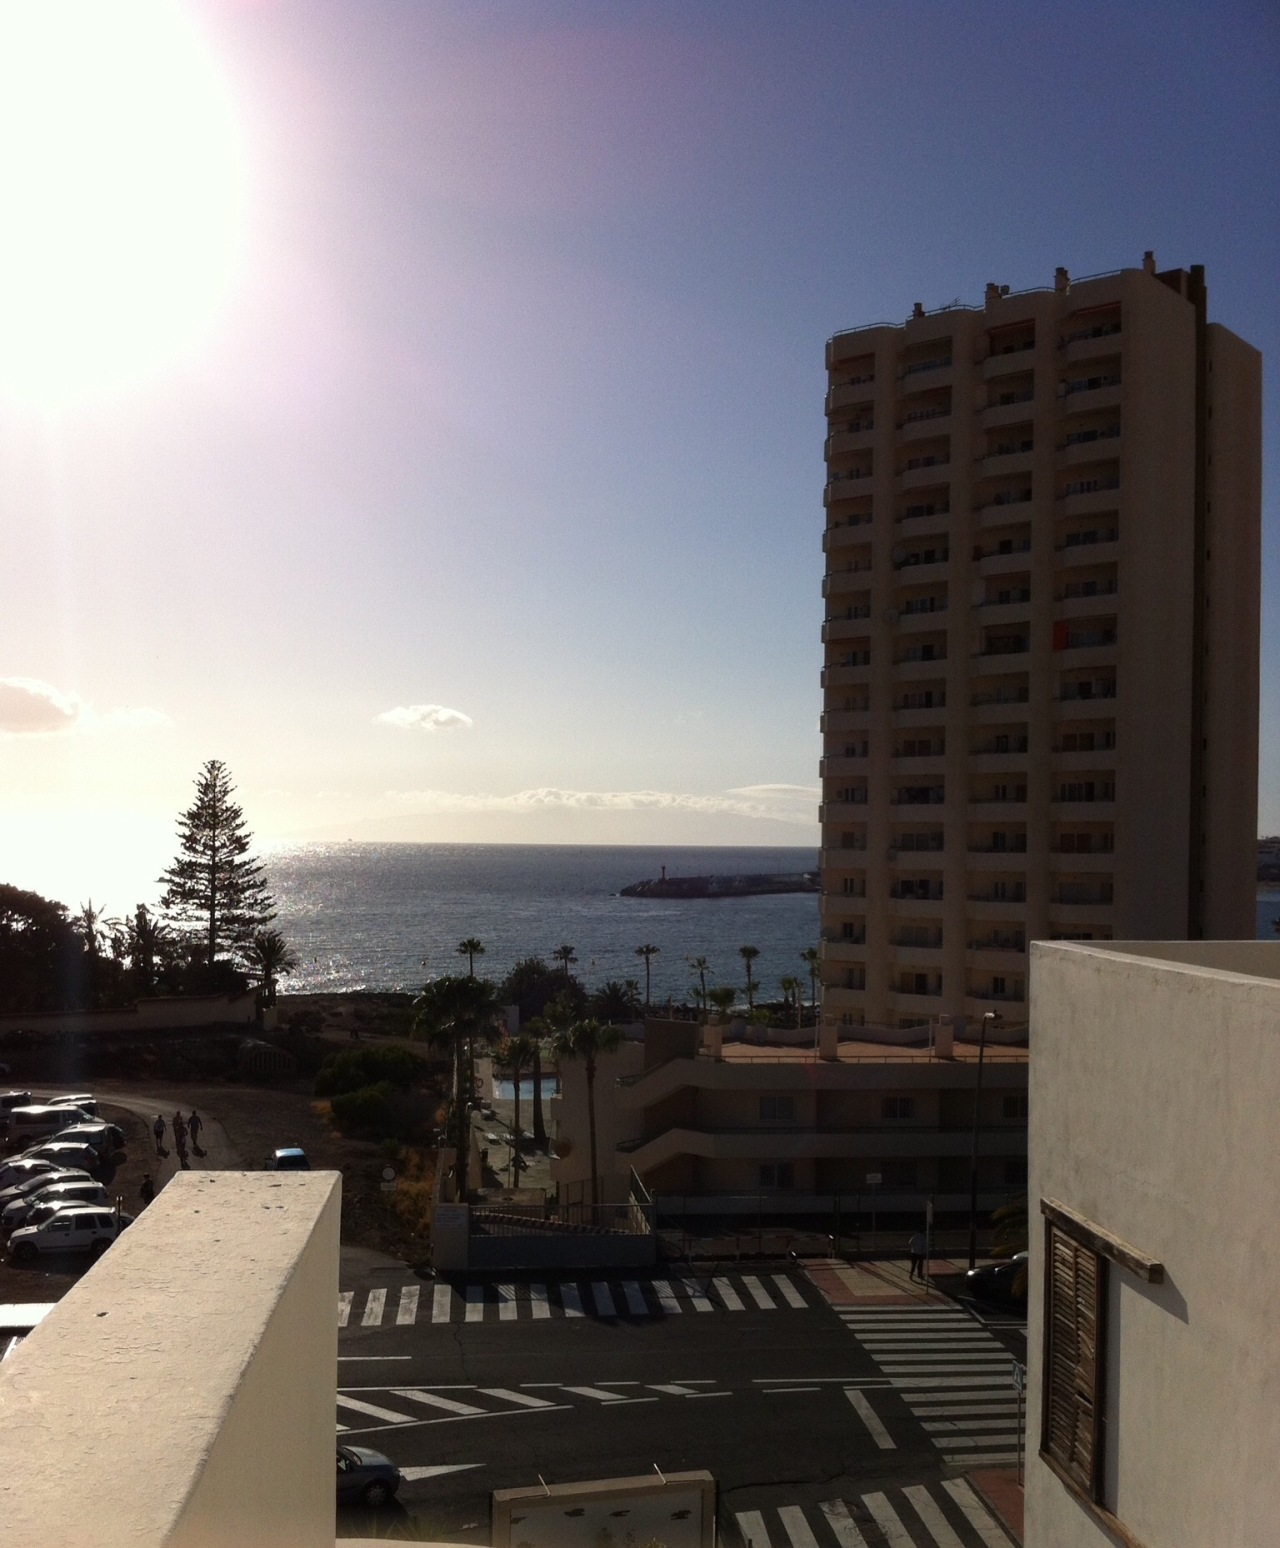 Late afternoon view from near our friends' holiday apartment, Tenerife, Canary Islands, Spain. [Photo by me, 2016.]